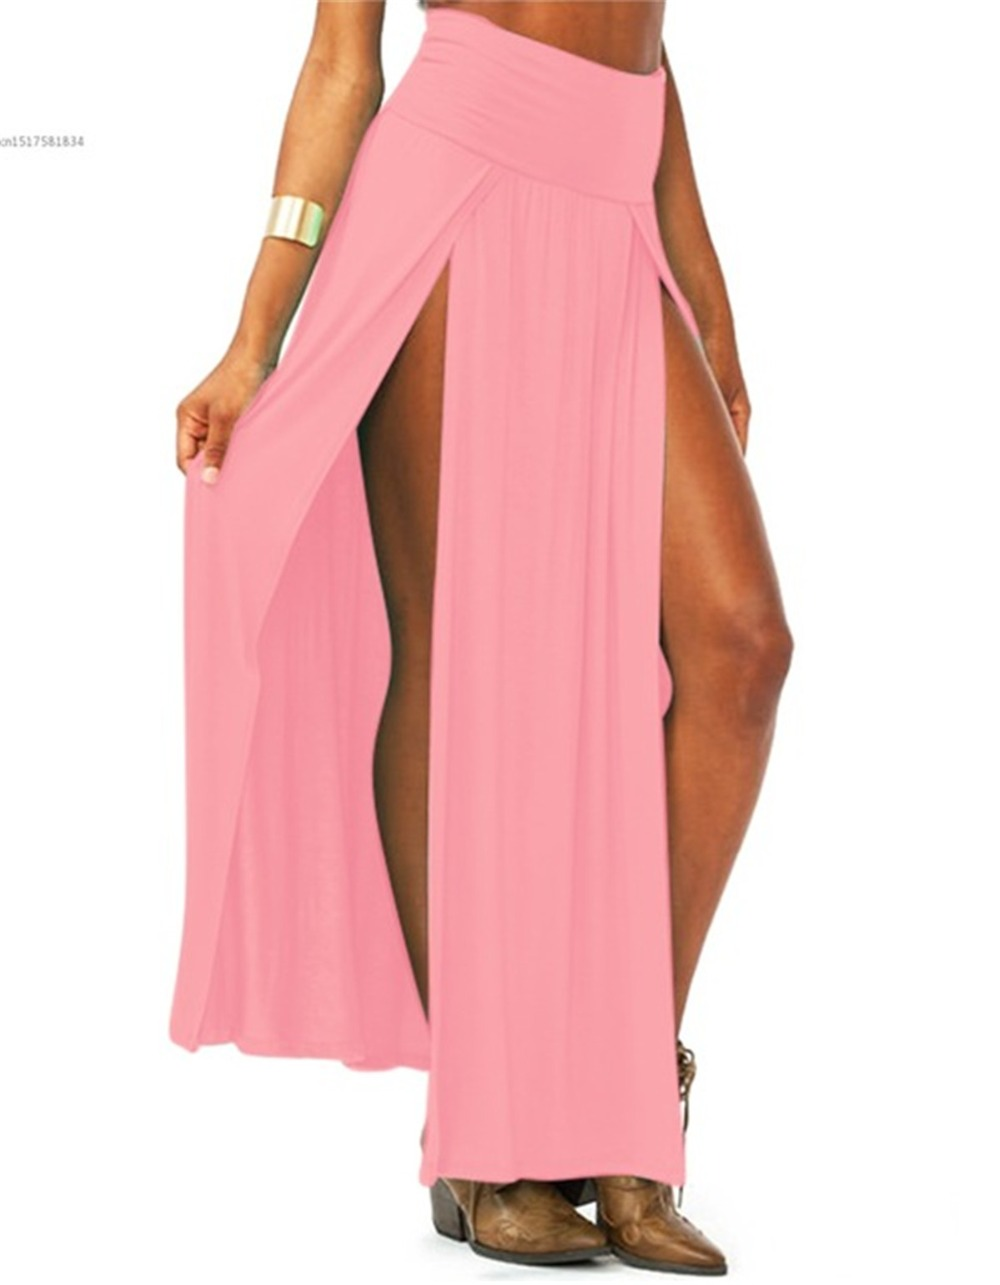 2019-New-Arrival-High-Waisted-Sexy-Womens-Double-Slits-Summer-Solid-Long-Maxi-Skirt-Wholesale-51.jpg_640x640 (4)